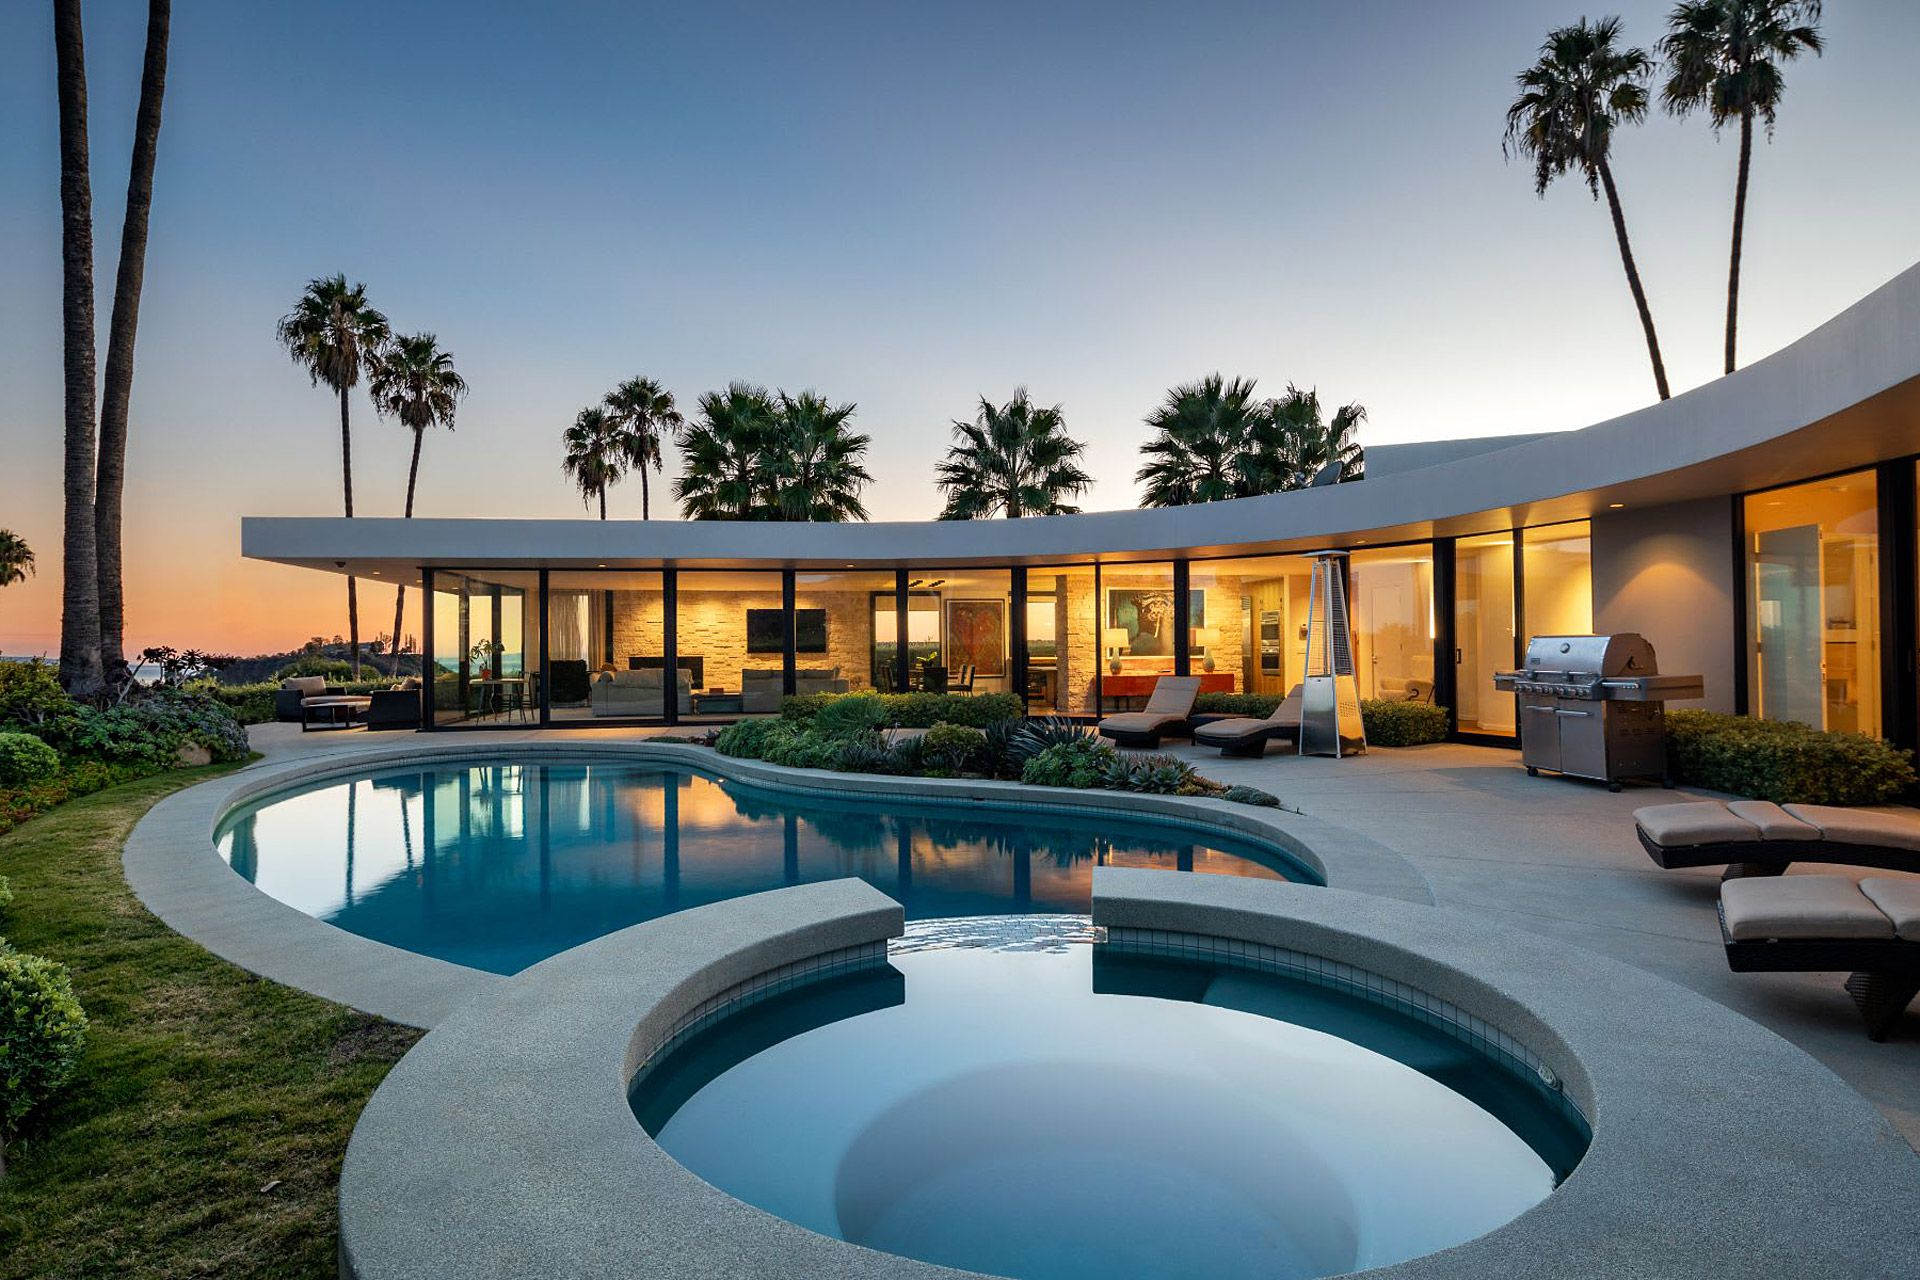 Elon Musk S Brentwood House Los Angeles Homes Celebrity Houses